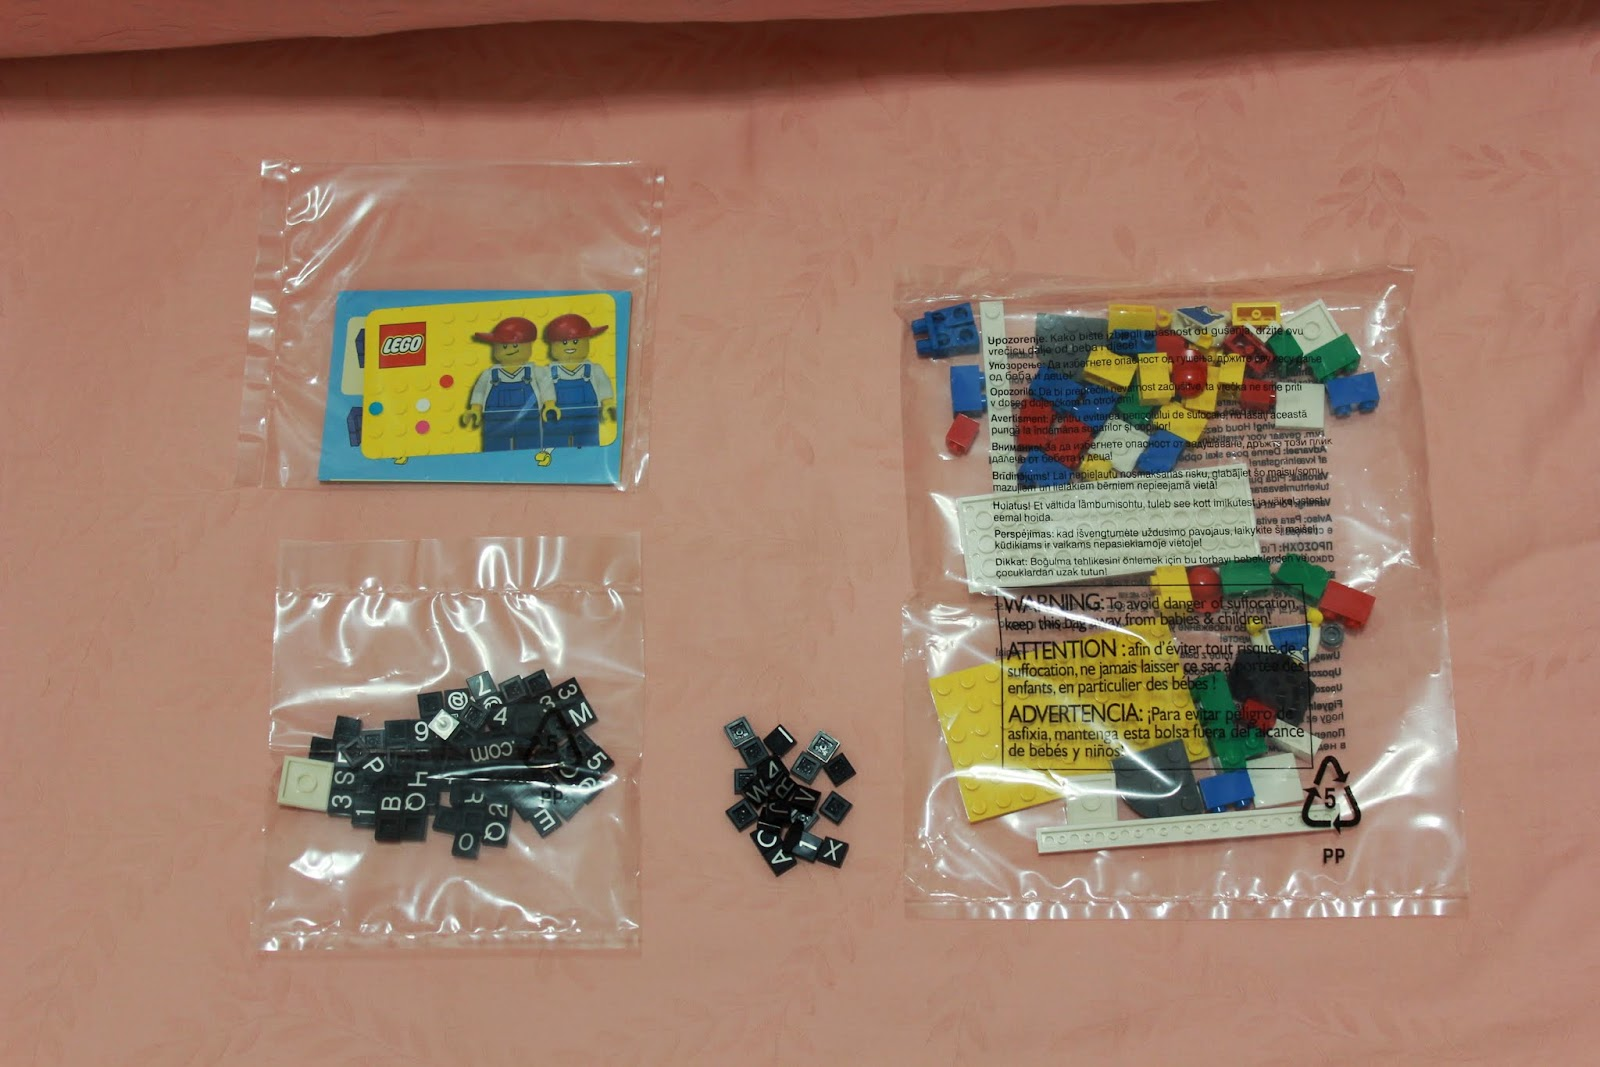 Desk Business Card Holder Lego Gallery - Card Design And Card Template